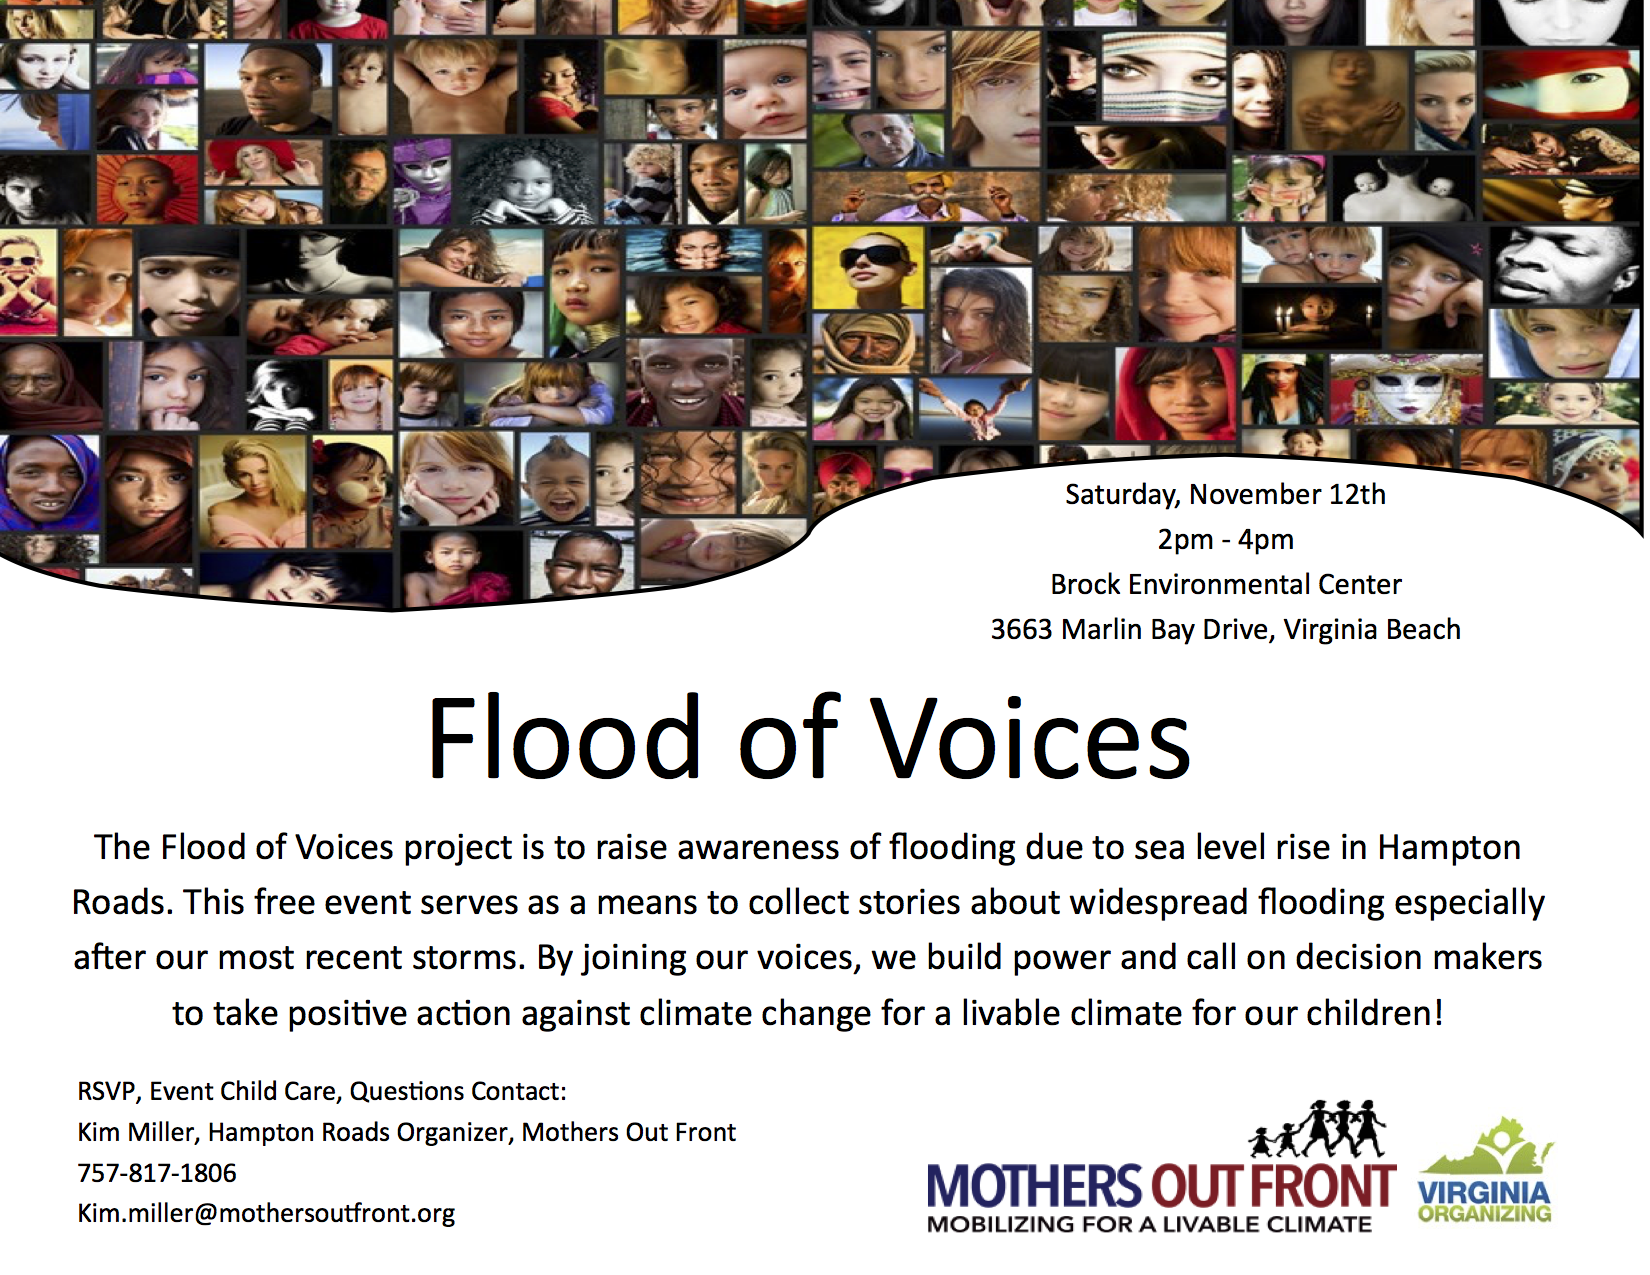 Flood_of_Voices_flyer_2.png